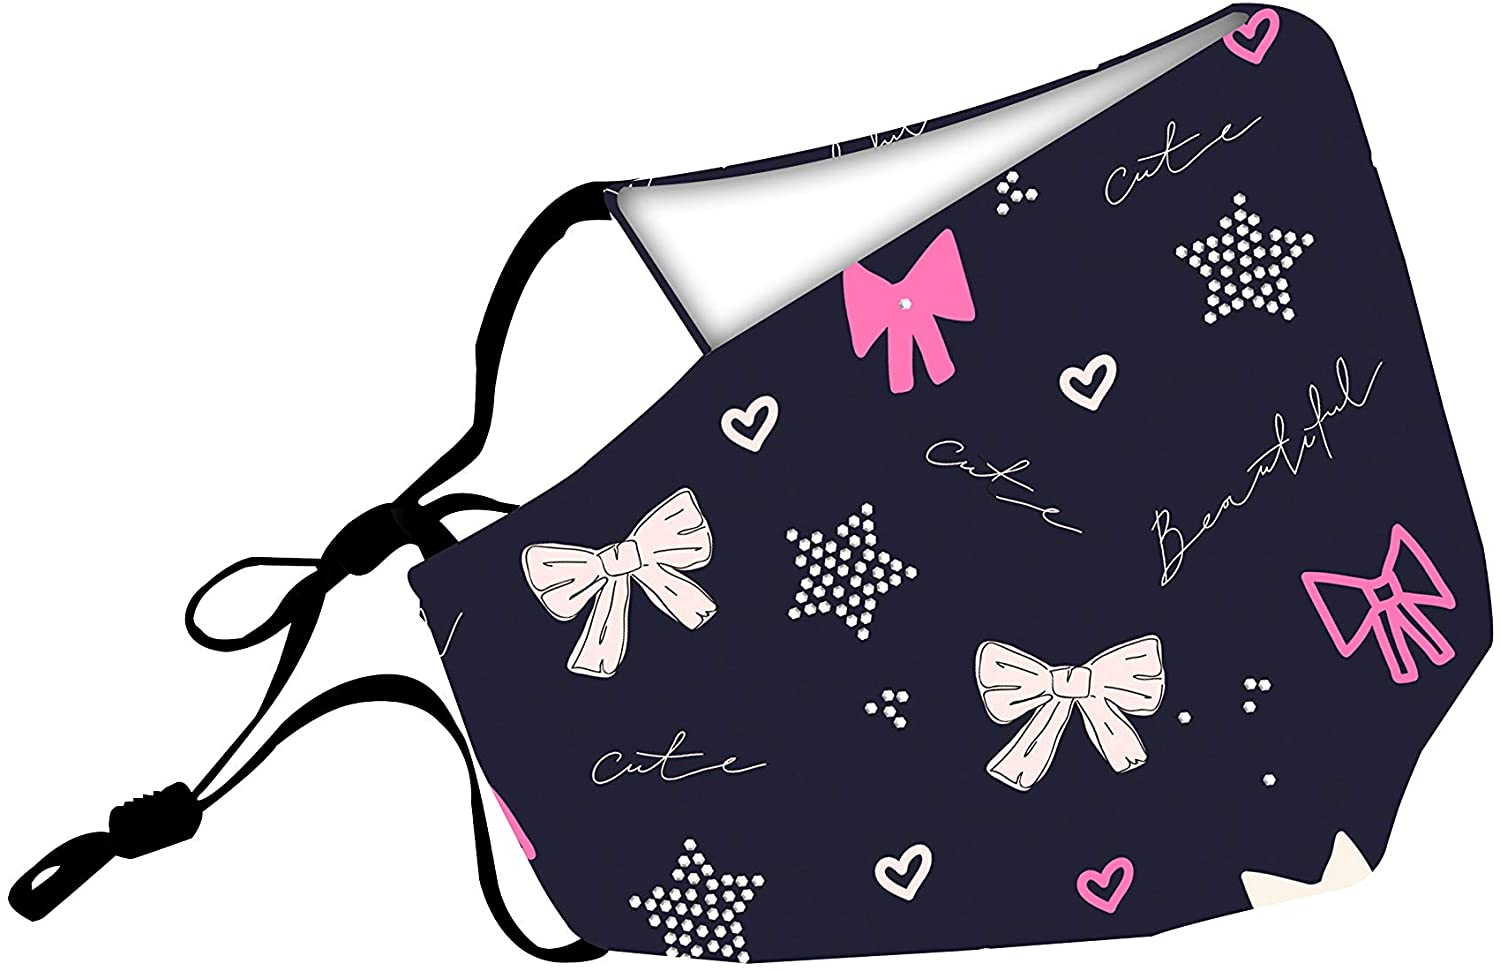 Viva Care 3 Layers Reusable Soft Cotton Face Mask | Deep Blue Girly Doodle Printed Protective Washable Fashion Masks | Adjustable Nose Bridge & Ear-Loops Breathable Mouth Cover-4 Free Filters